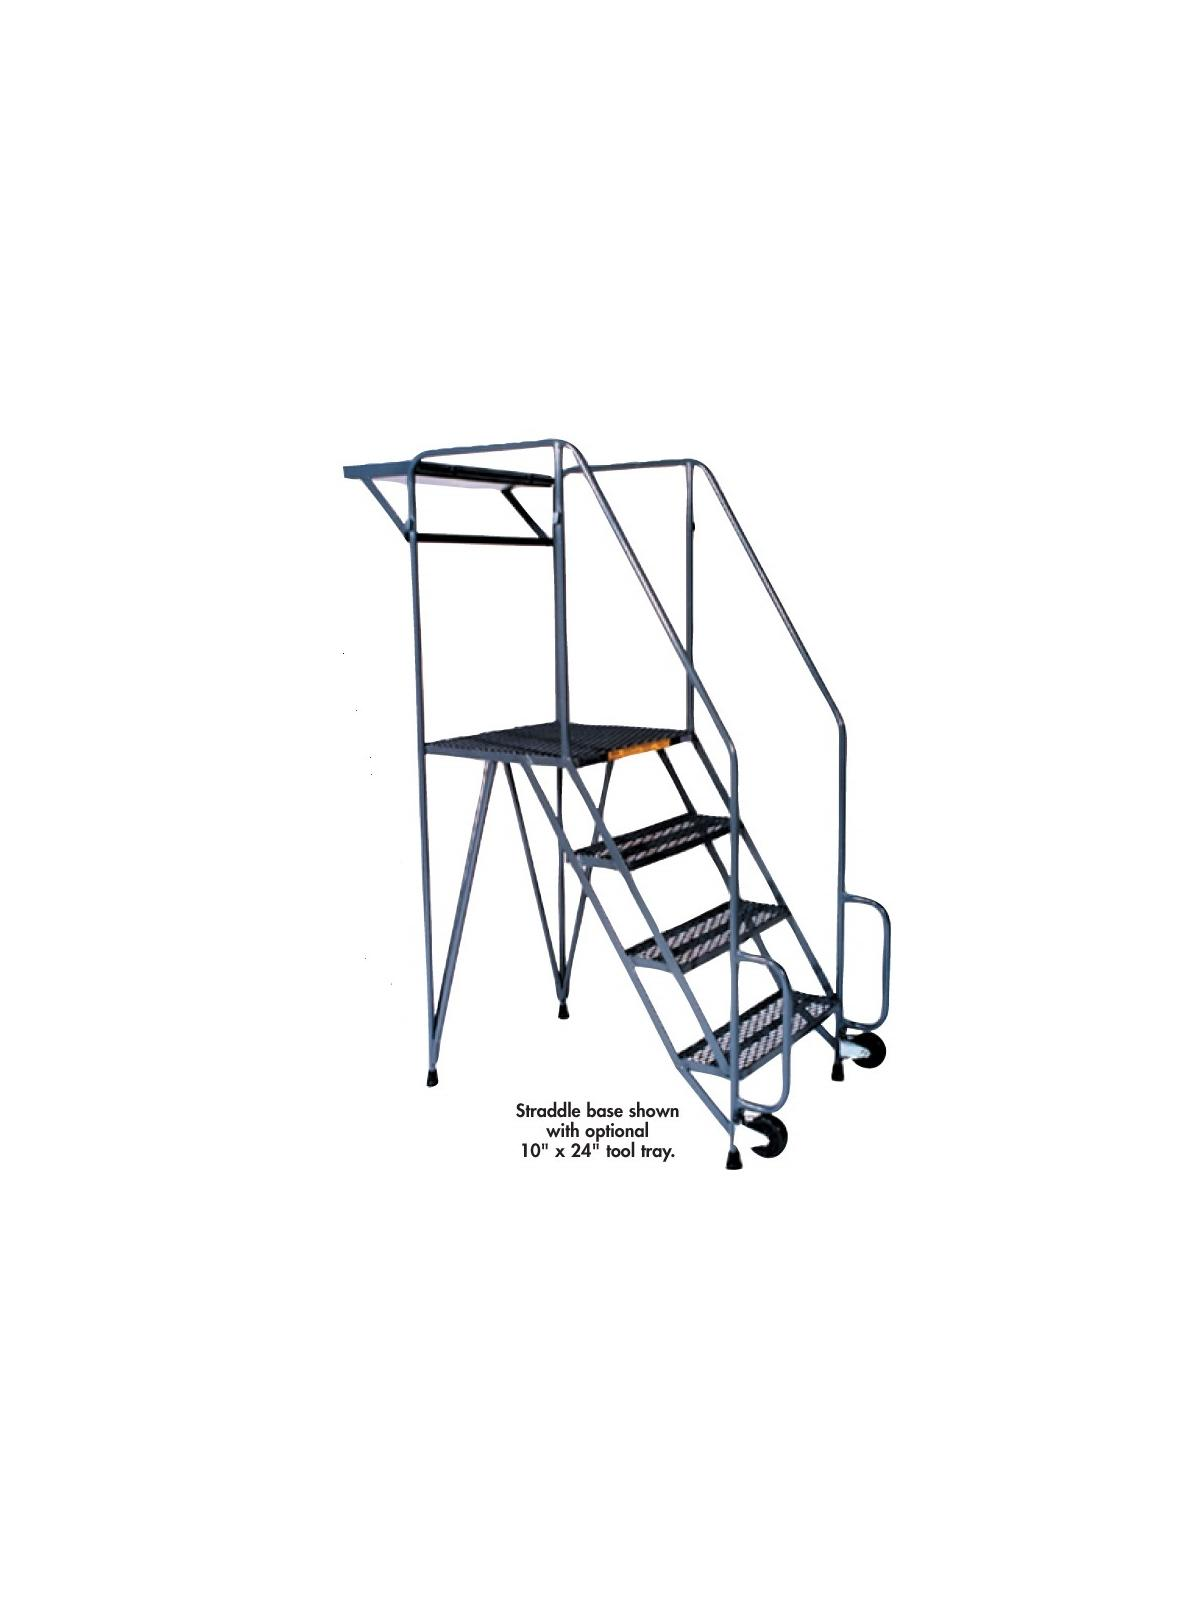 Tool Tray For Tilt Amp Roll Ladders At Nationwide Industrial